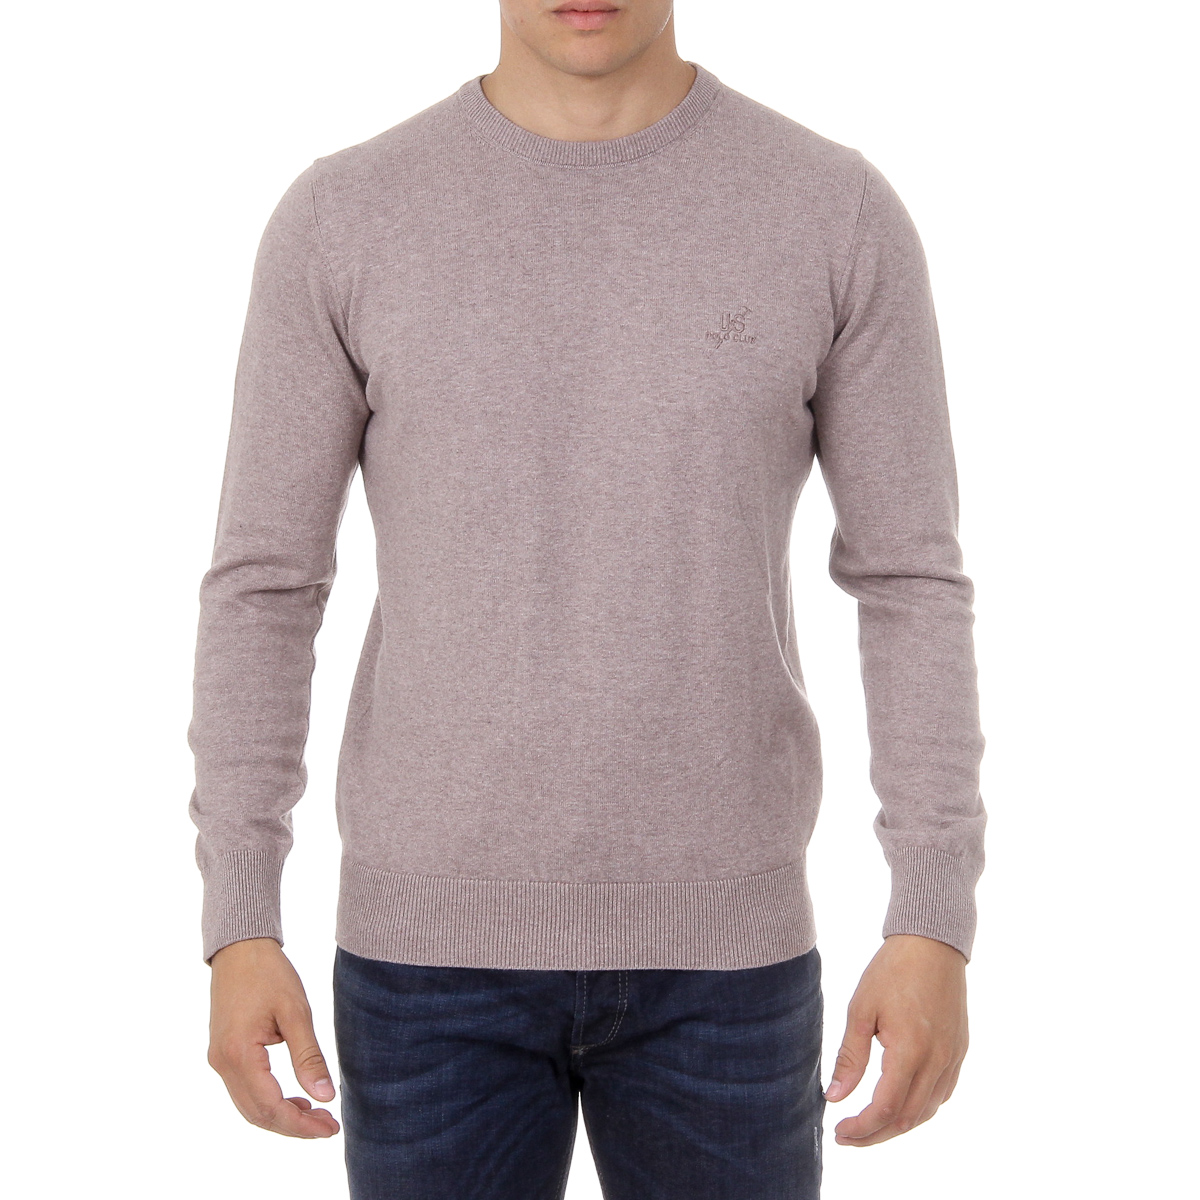 Primary image for Ufford & Suffolk Polo Club Mens Sweater Long Sleeves Round Neck PULLRUS100 VISON